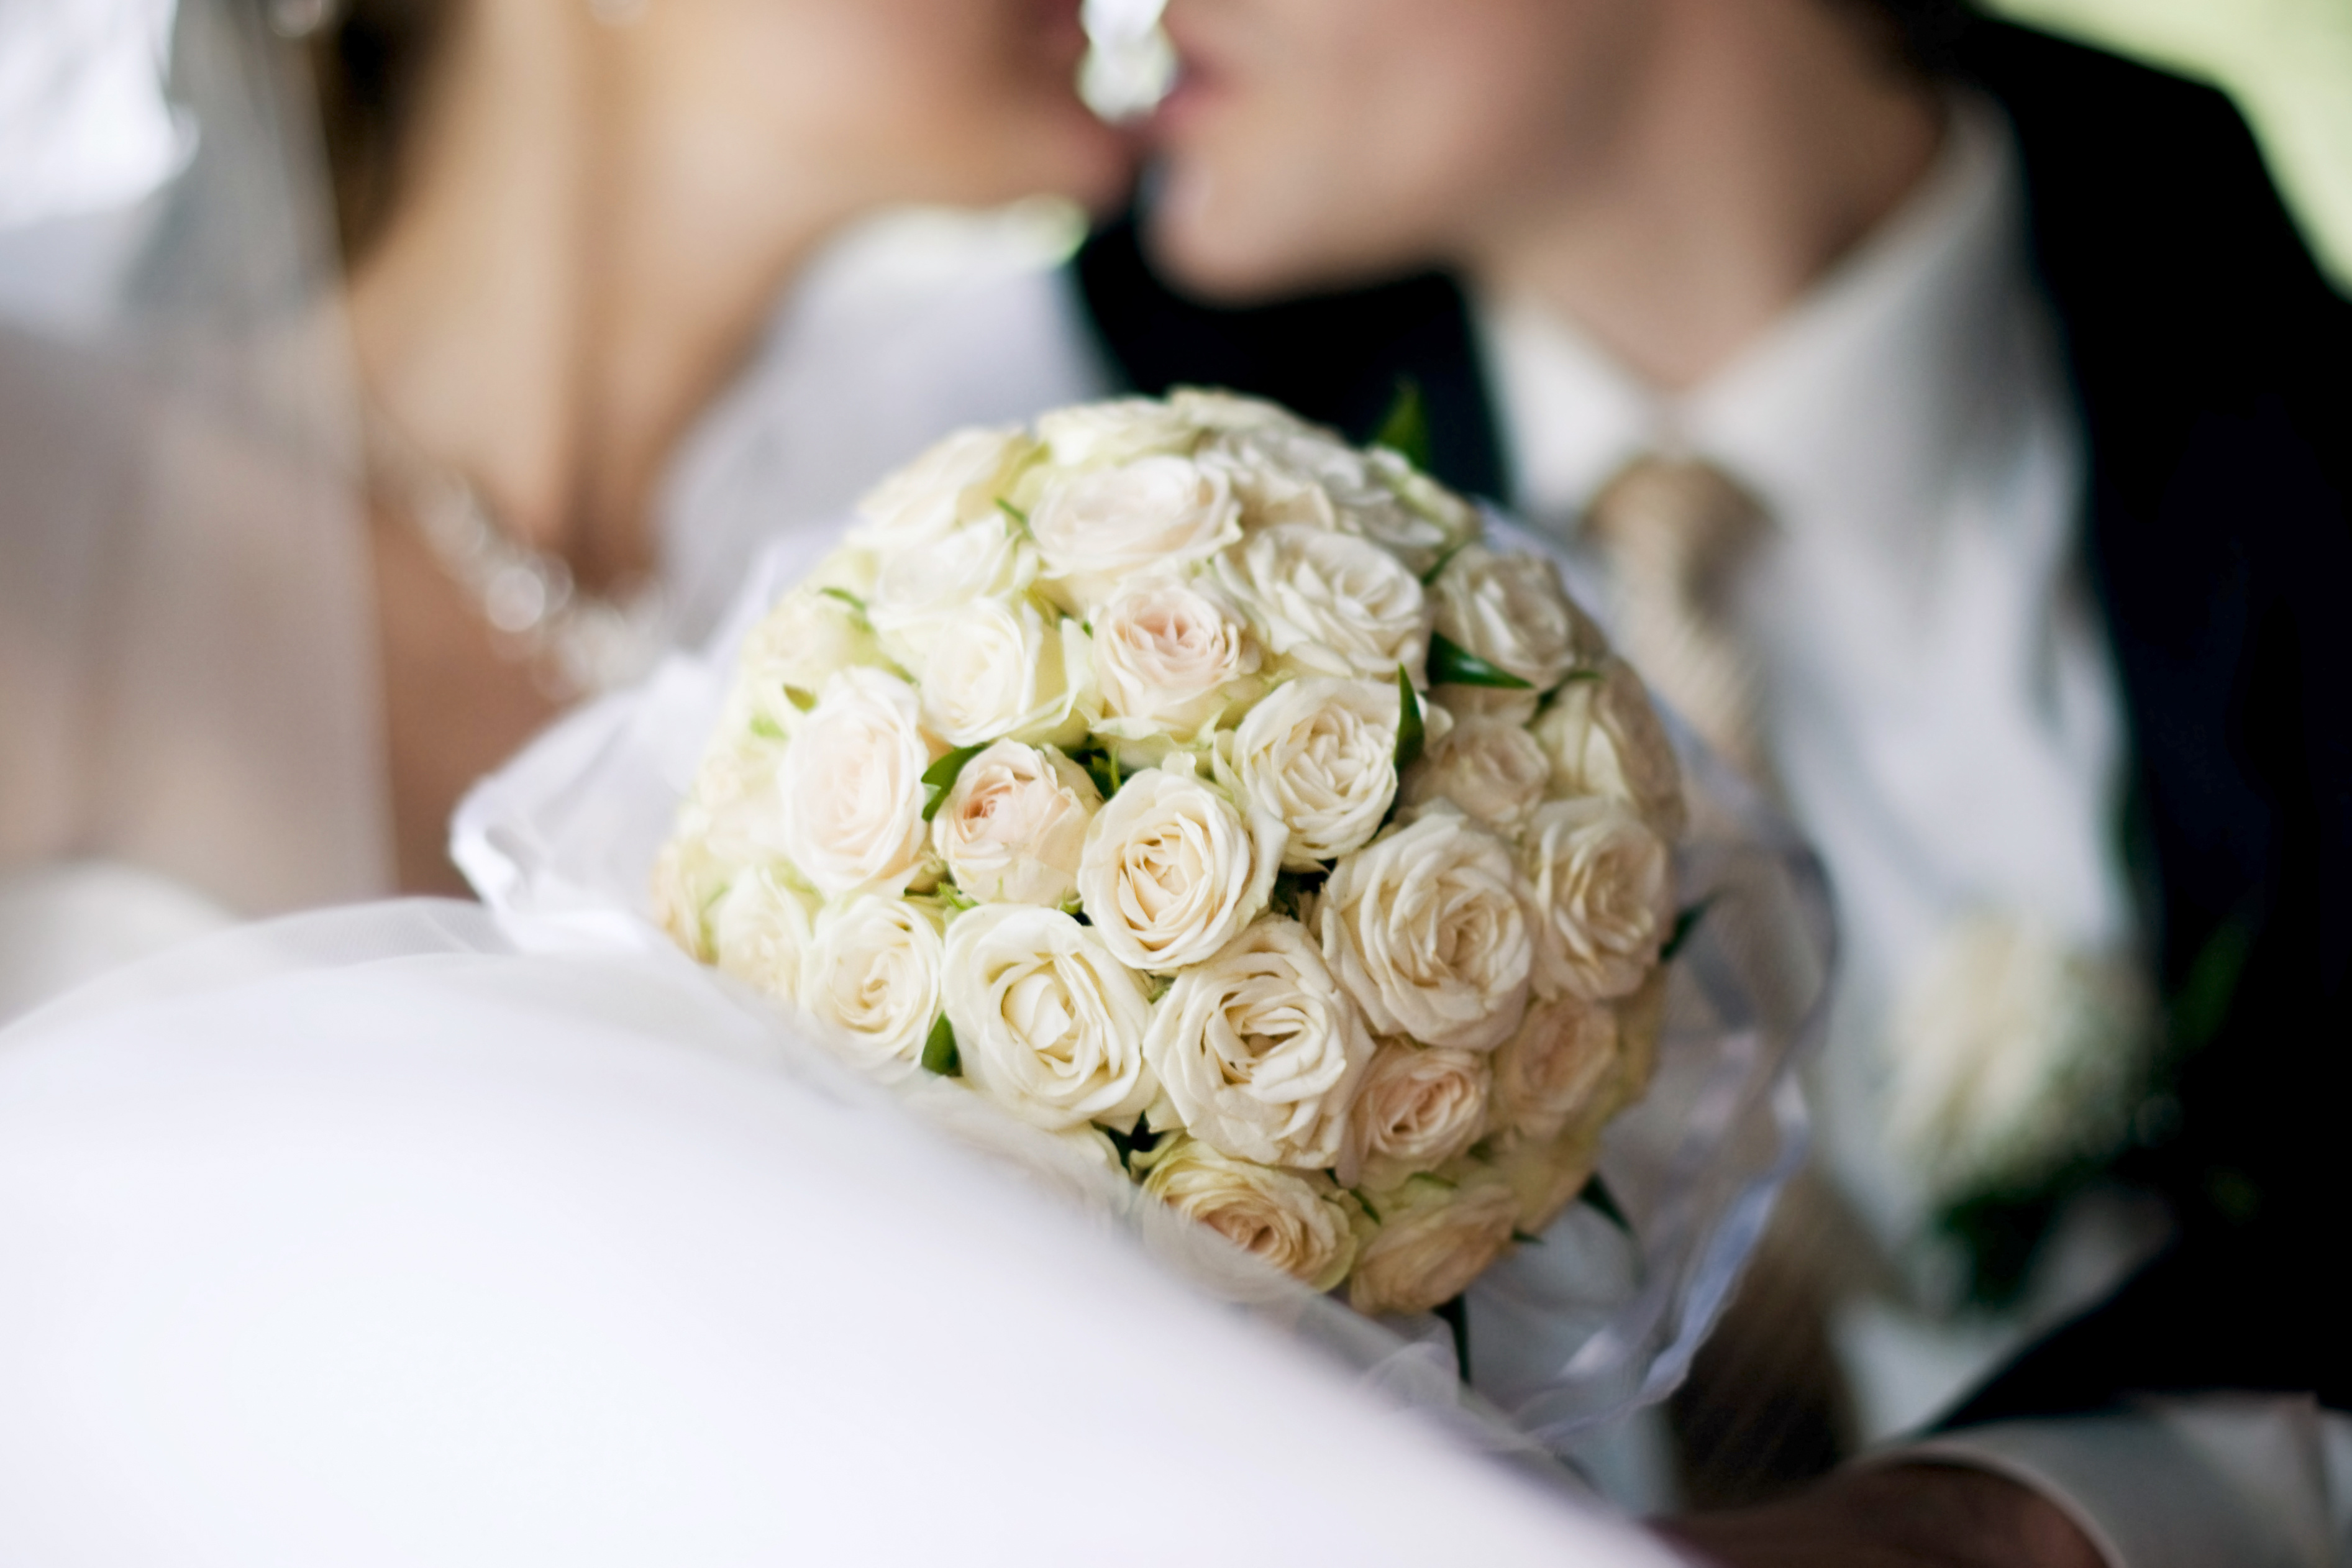 7 Types of Flower Bouquets